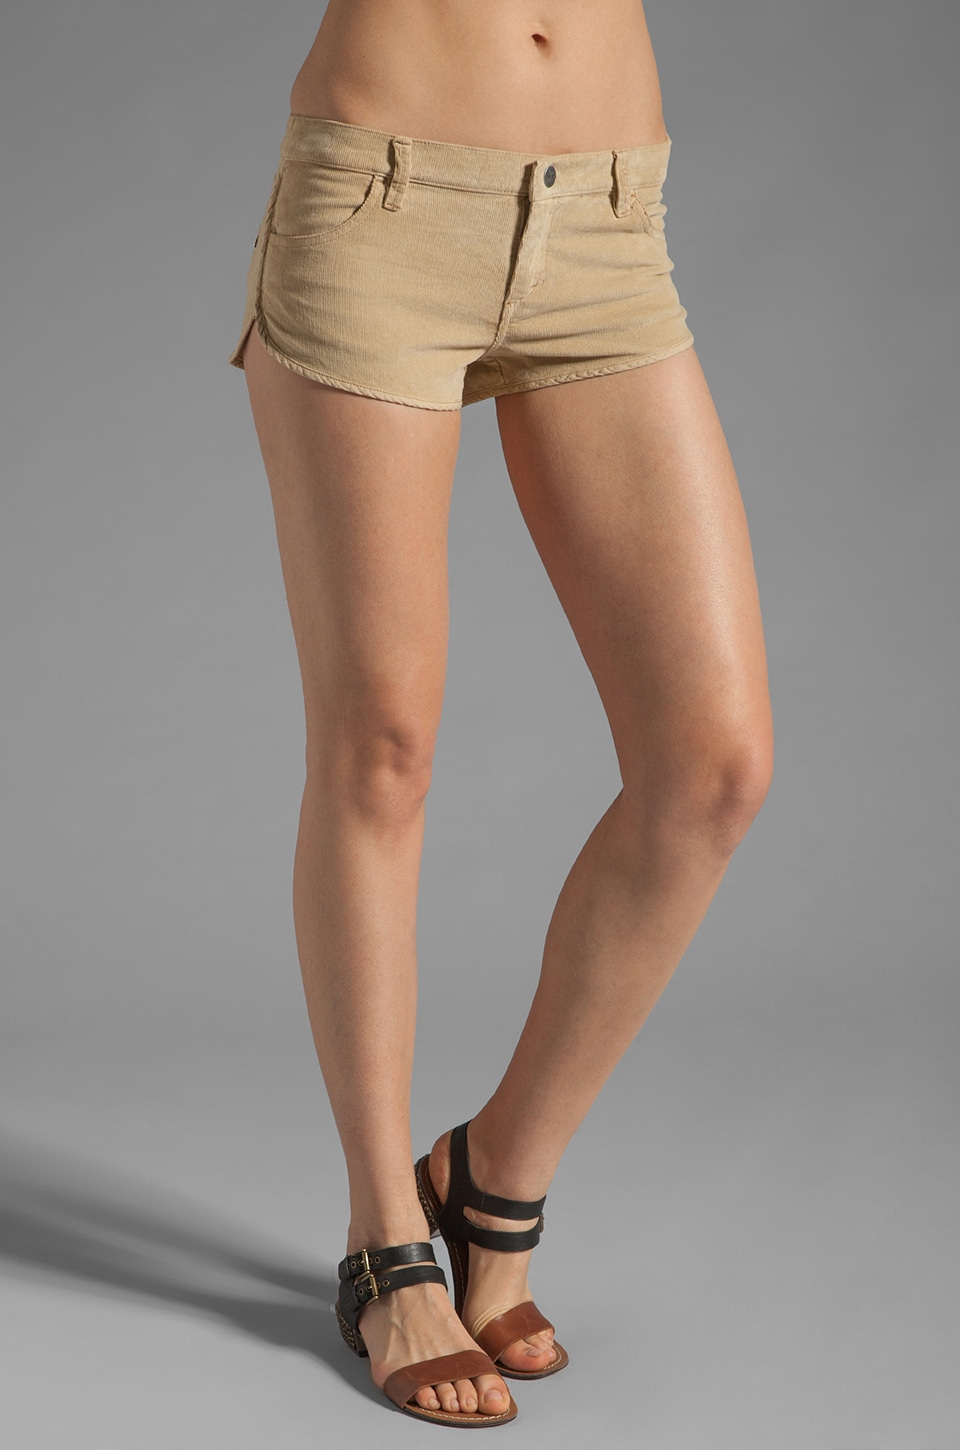 RVCA Street Scene Corduroy Short in Tan